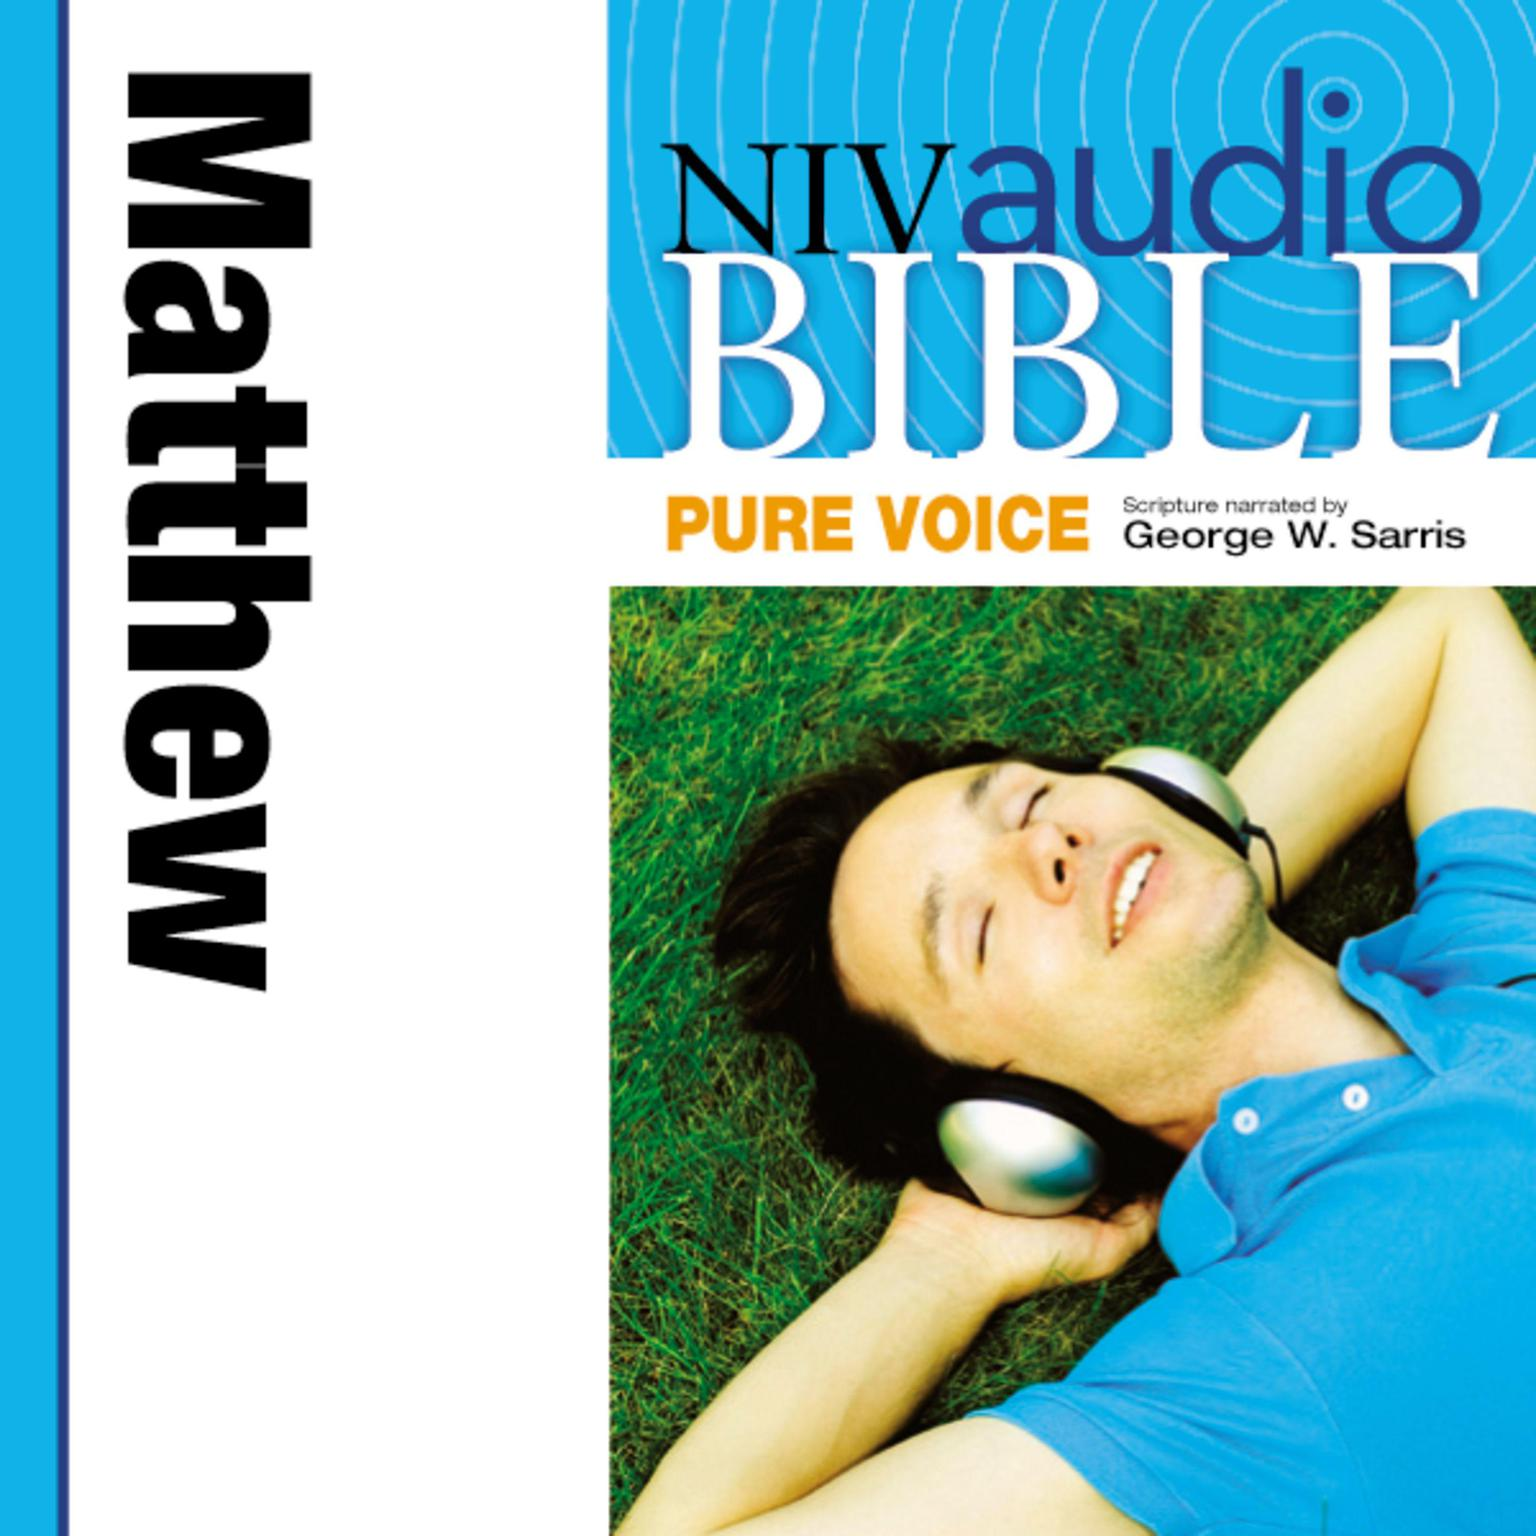 Printable NIV, Audio Bible, Pure Voice: Matthew, Audio Download (Narrated by George W. Sarris) Audiobook Cover Art